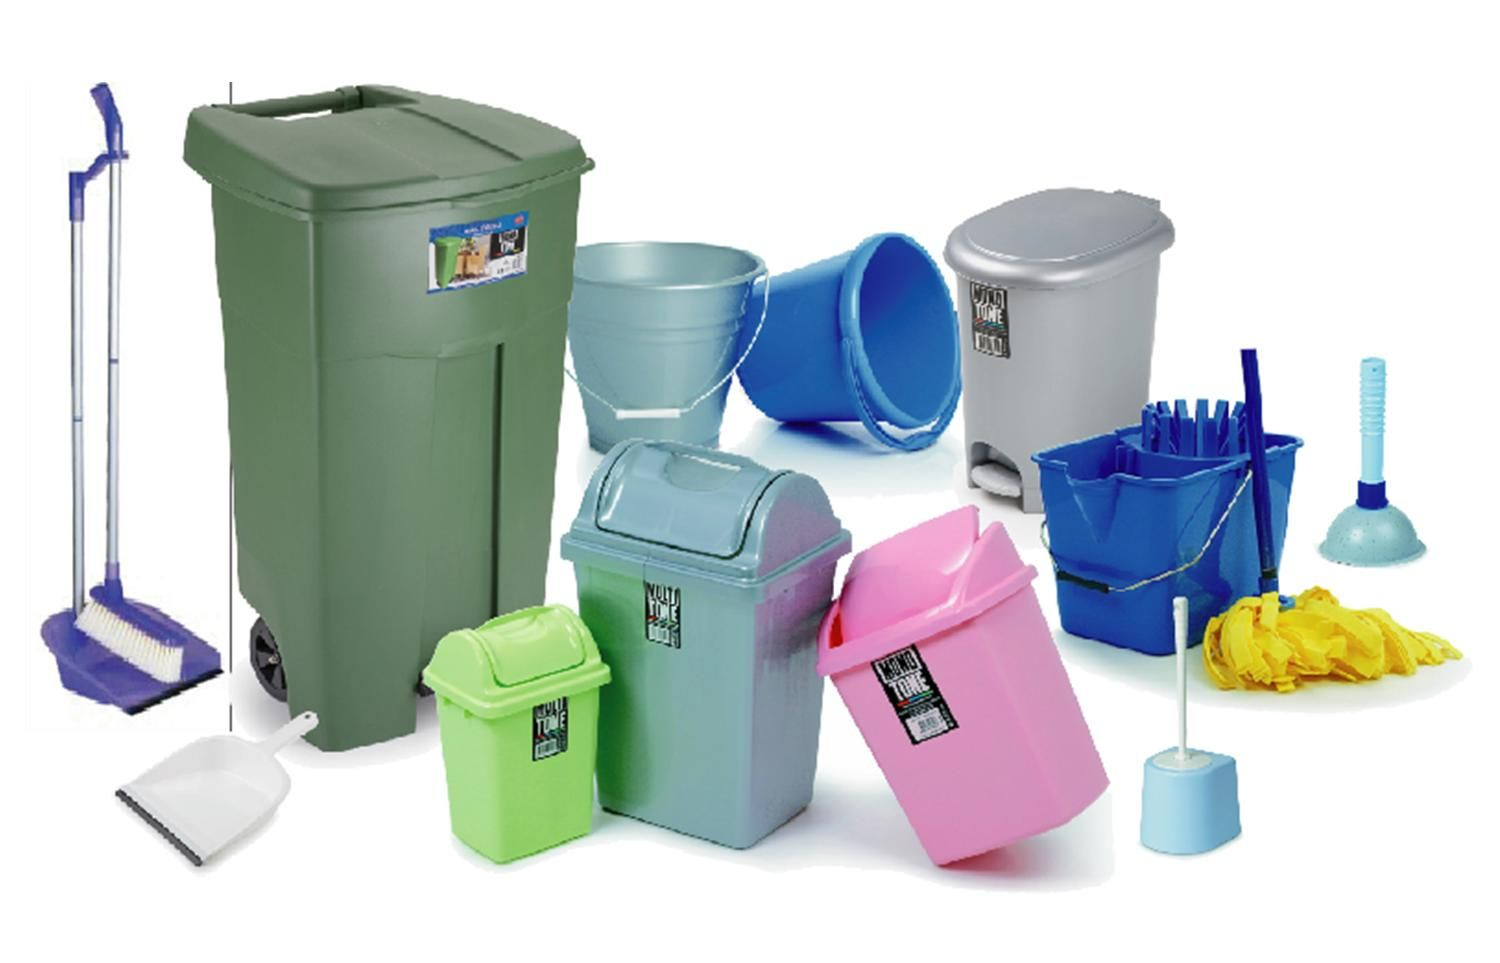 The report Plastic Product Market in India to 2019